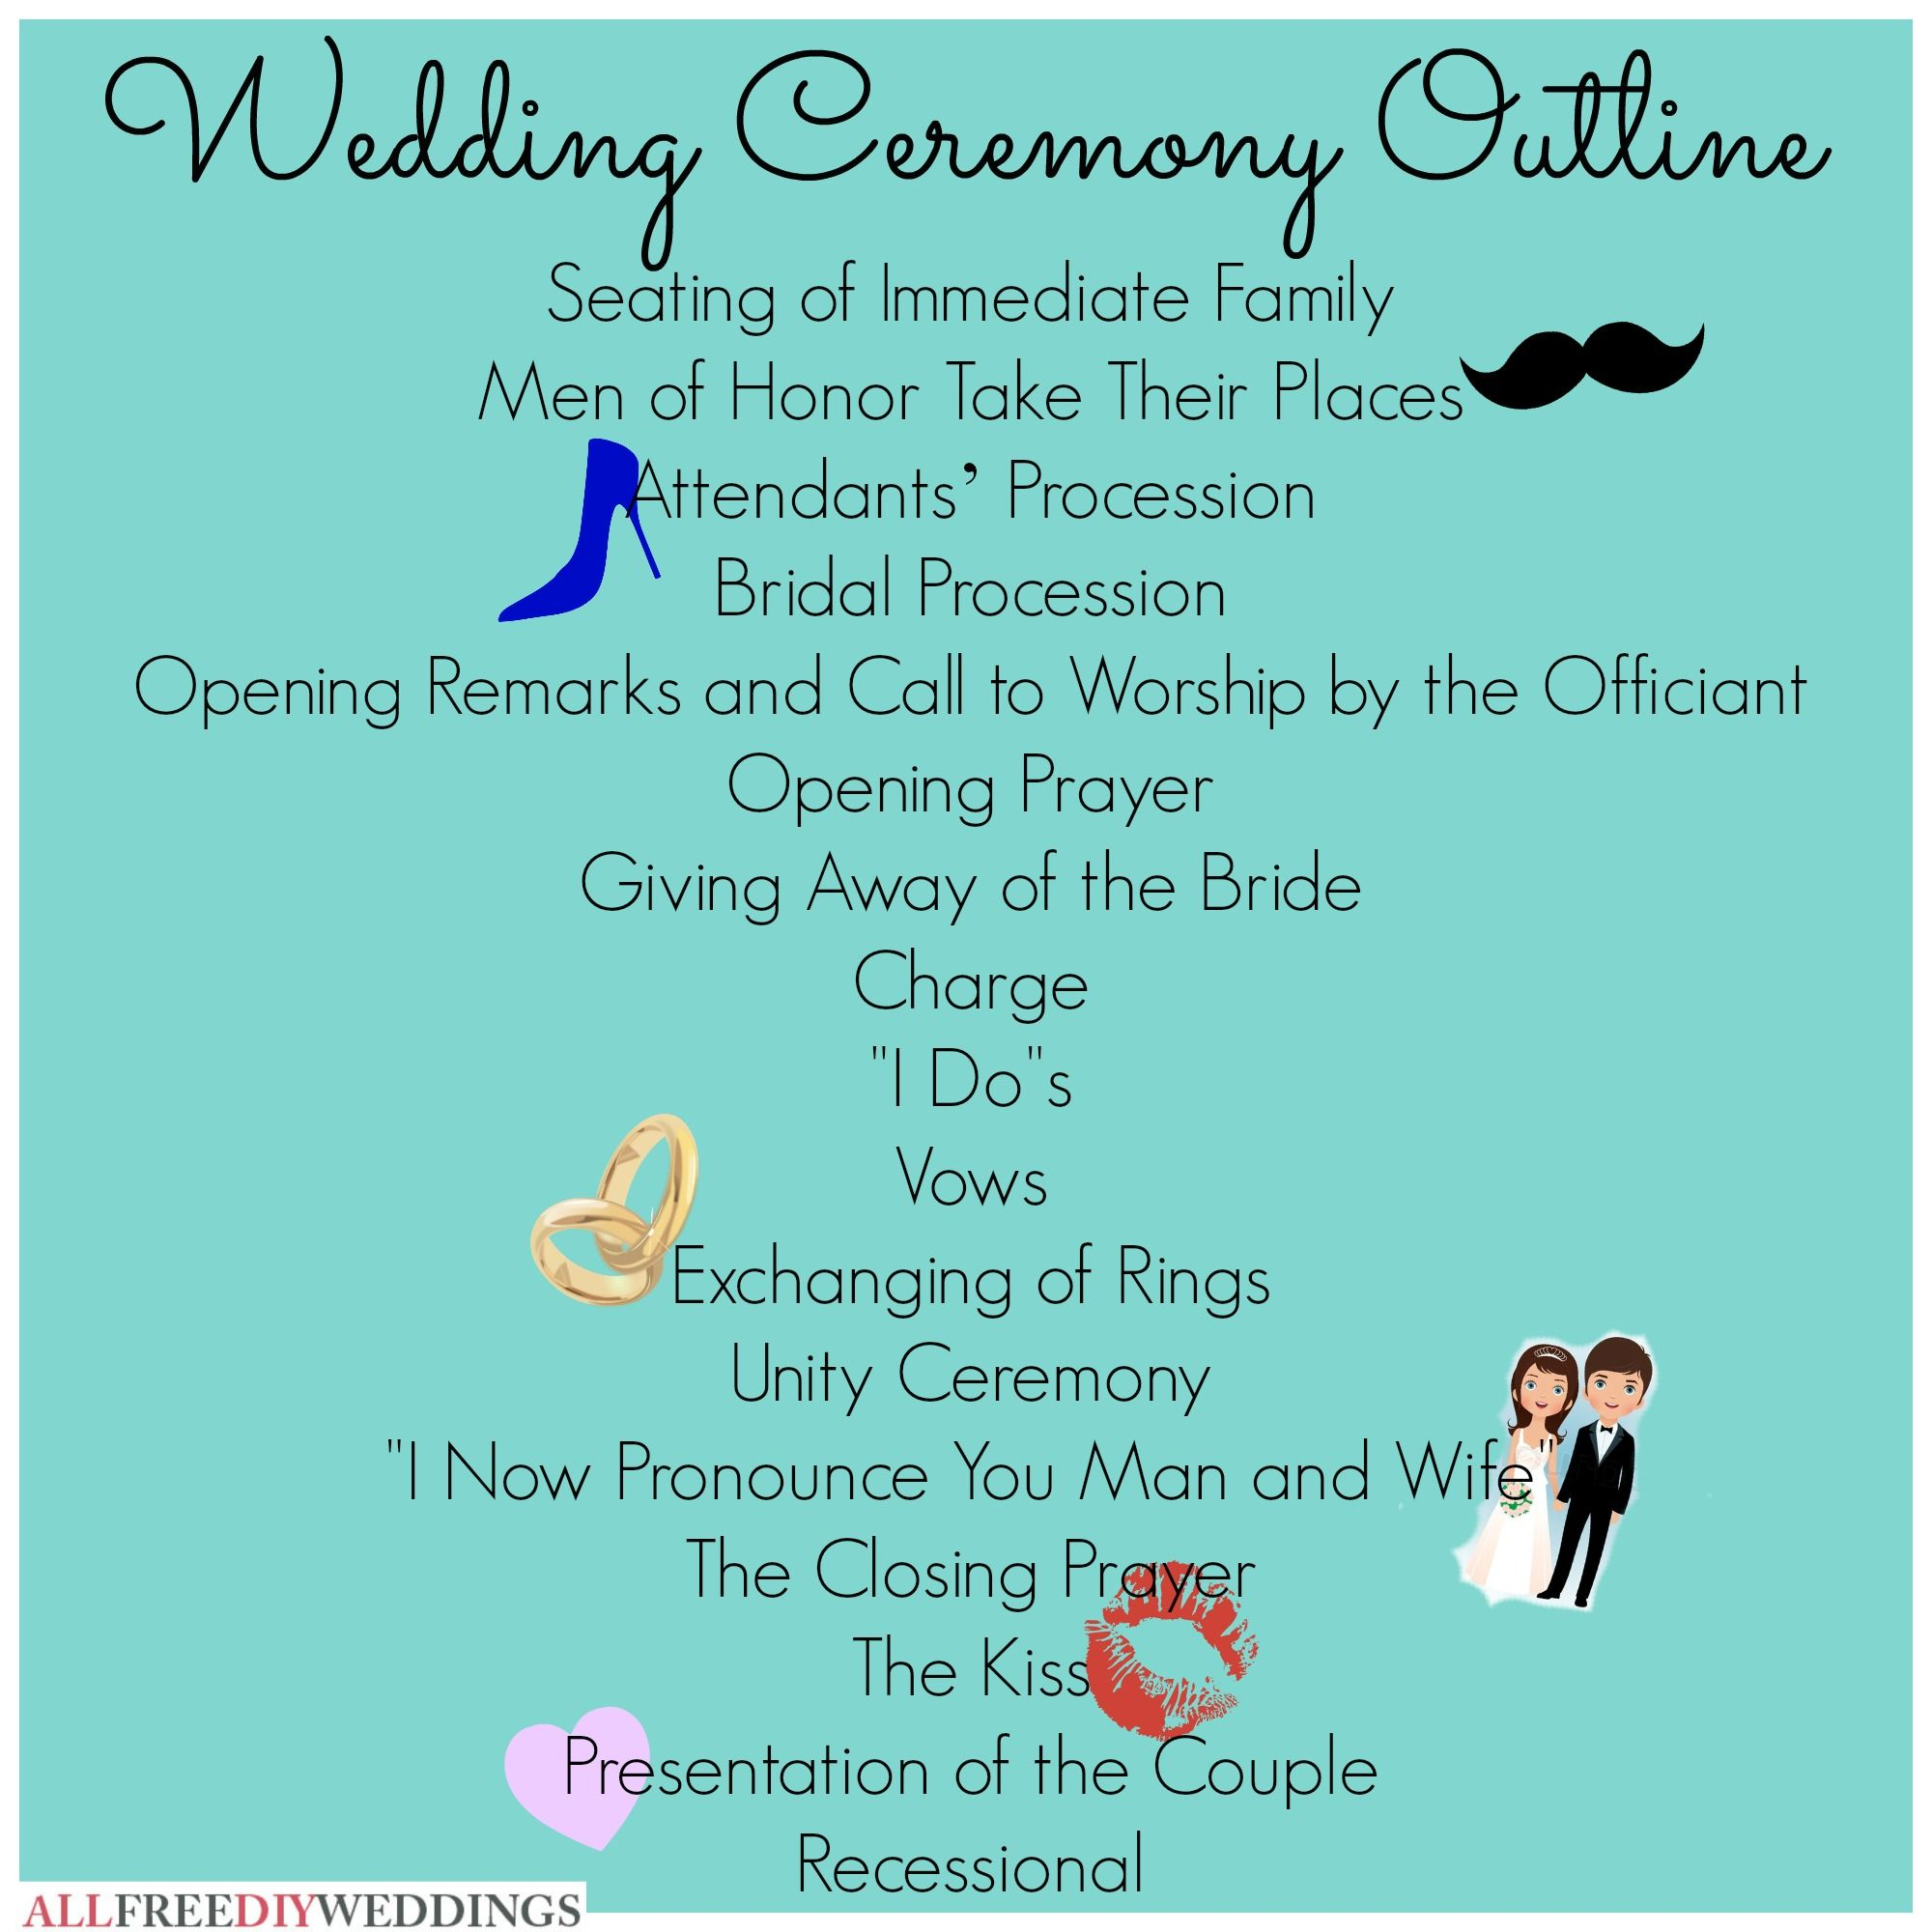 Wedding Ceremony Outline  Wedding Ceremony Outline Ceremony